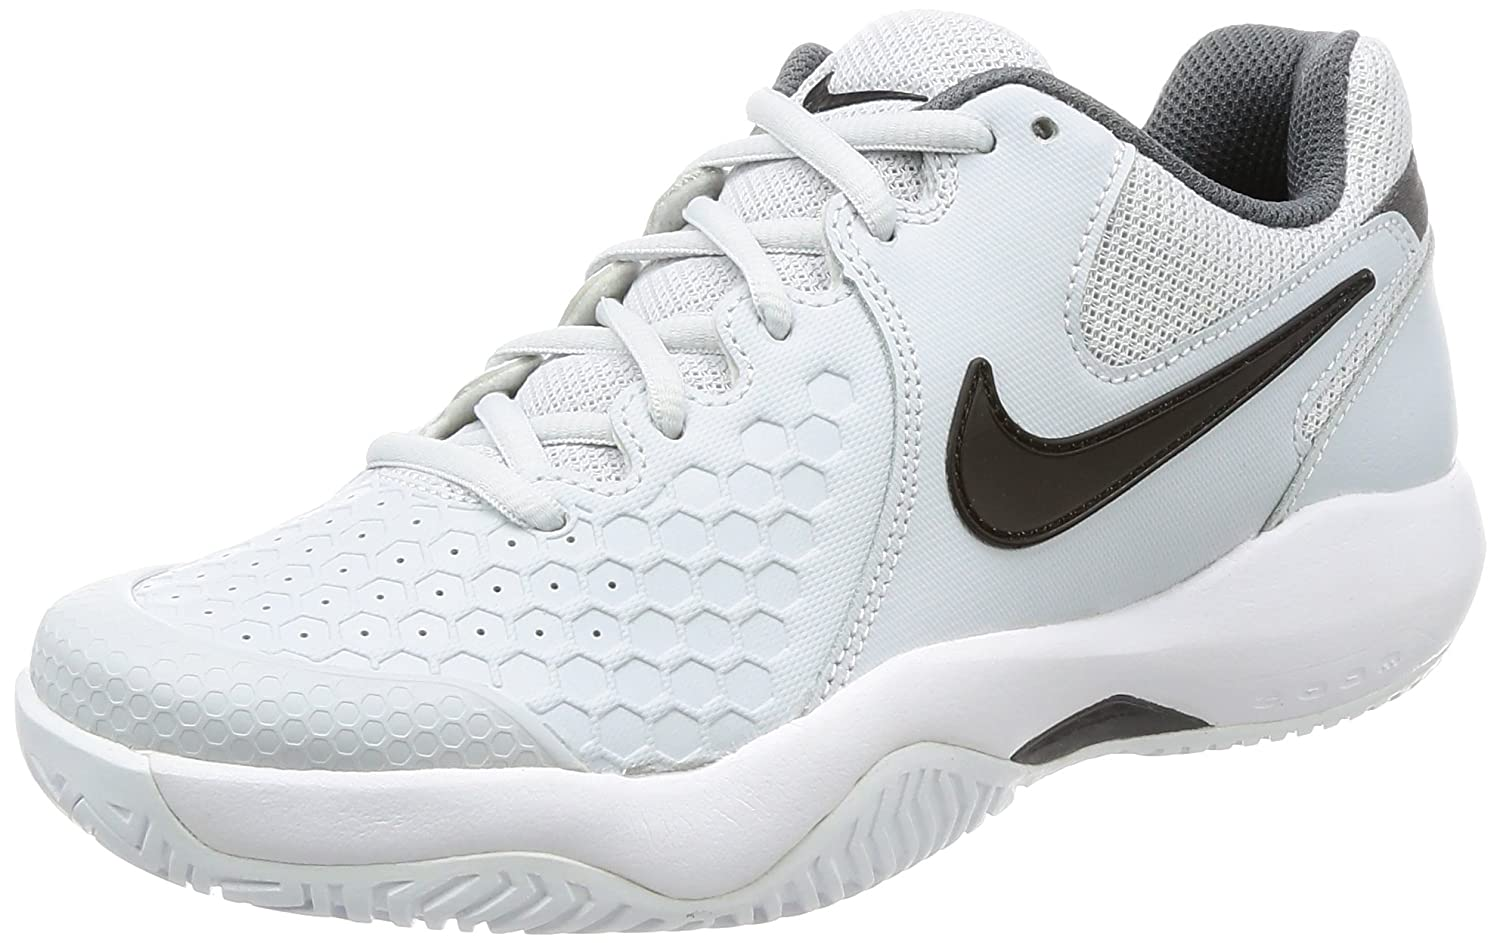 NIKE Women's Air Zoom Resistance Ankle-High Running Shoe B006T6895C 6.5 B(M) US|Platinum/Black/Dark Grey